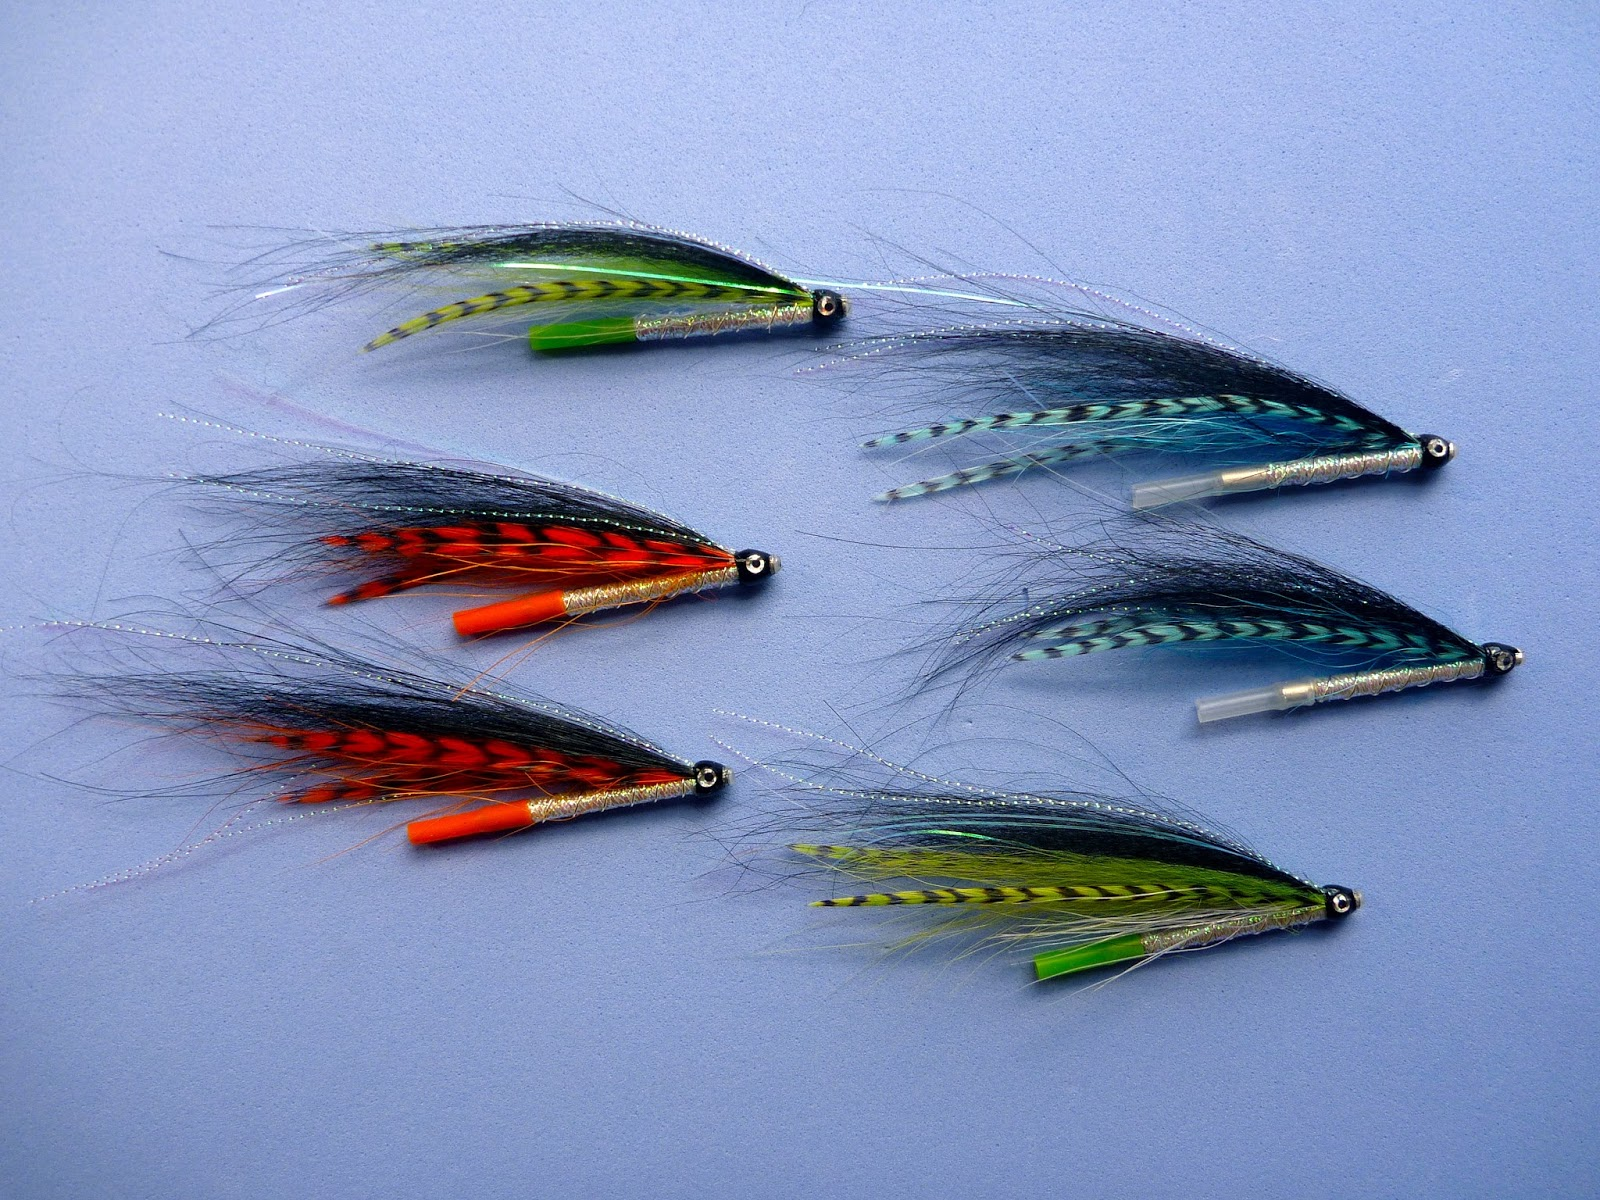 Atlantic Salmon Flies: HKA Sunray/Bismo/H.M.'s Sunray ...